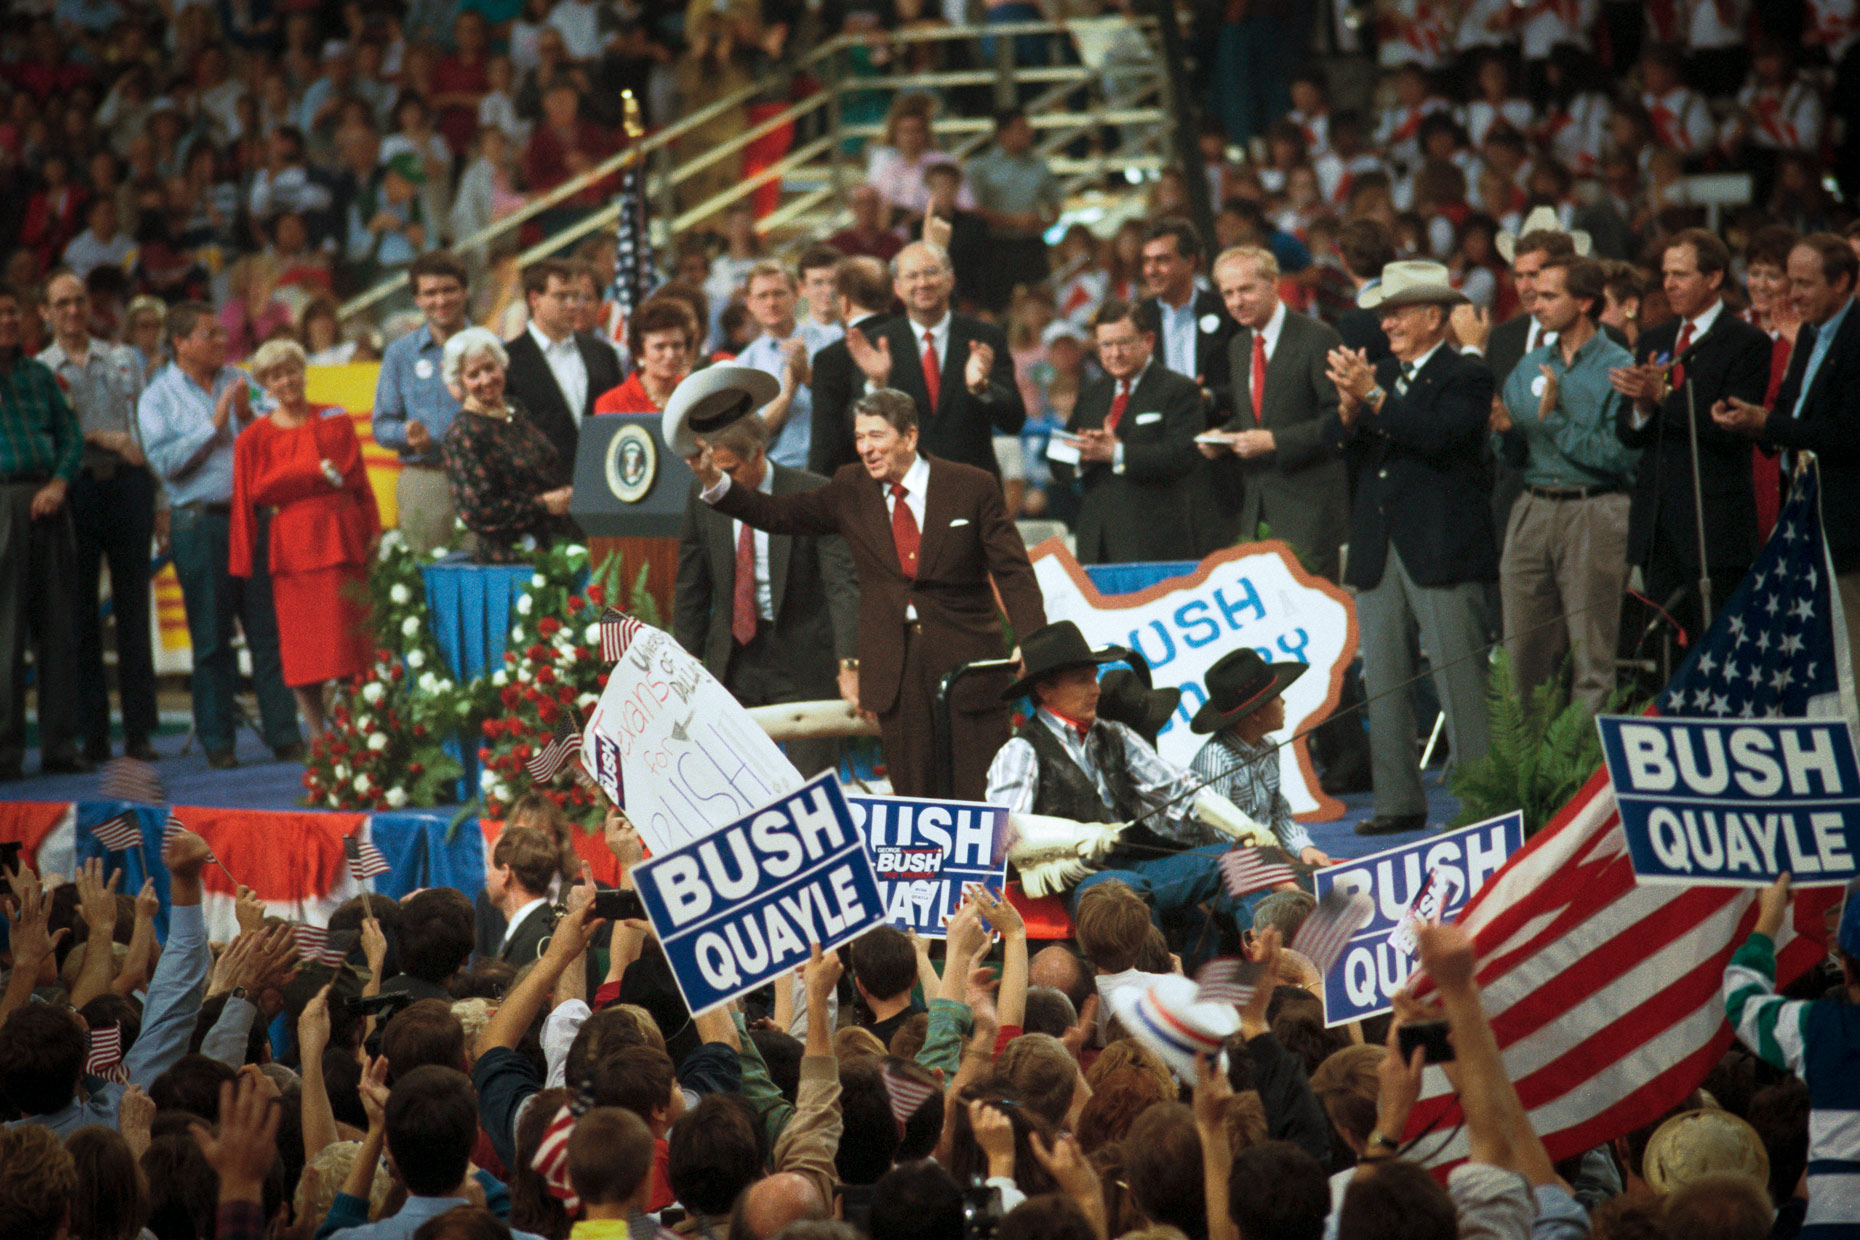 Ronald Reagan in Dallas, TX 1986 by Kevin Brown